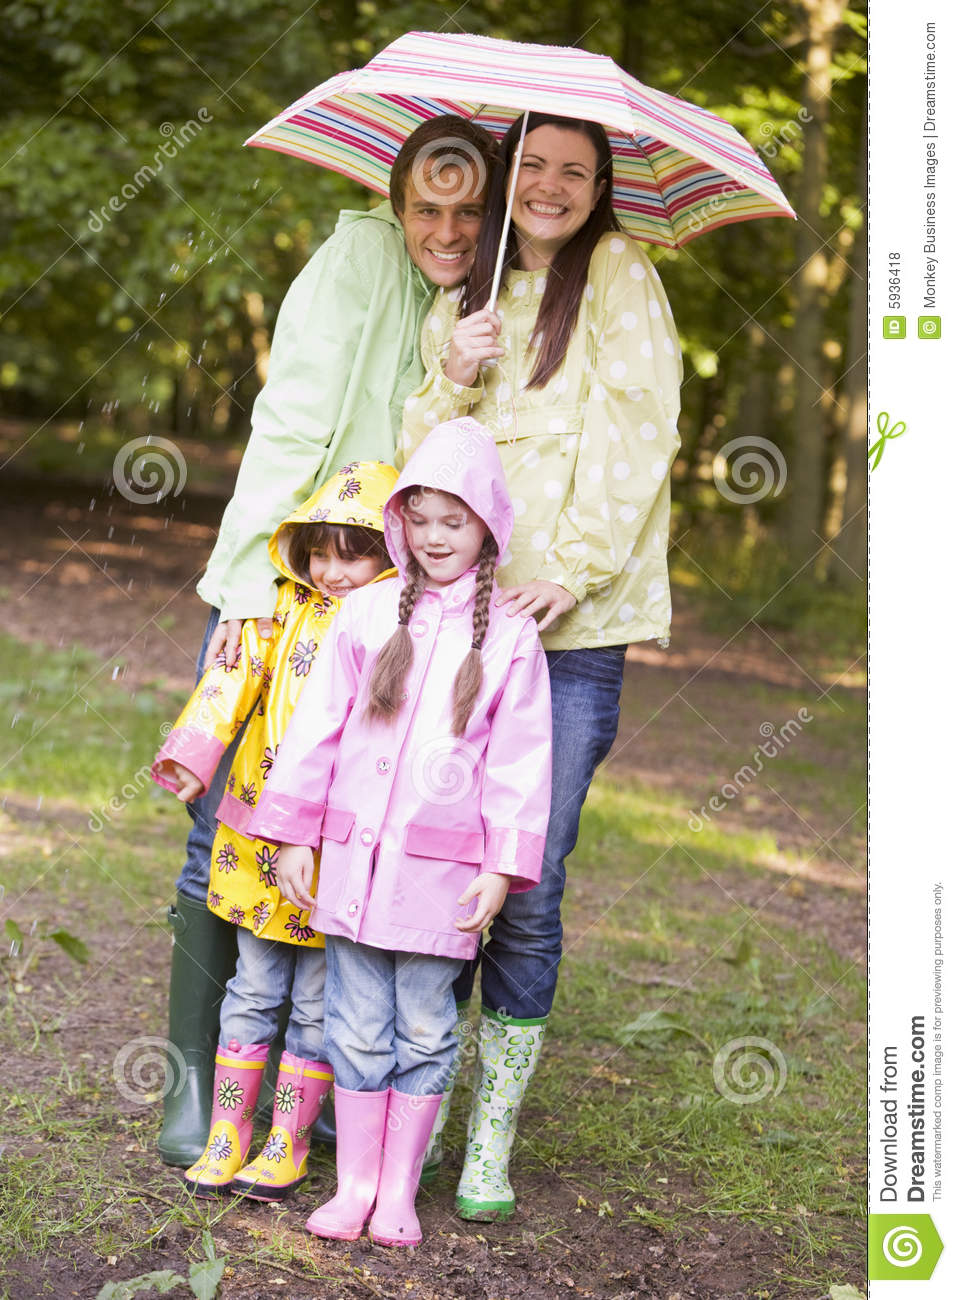 Family Outdoors In Rain With Umbrella Smiling Stock Photo